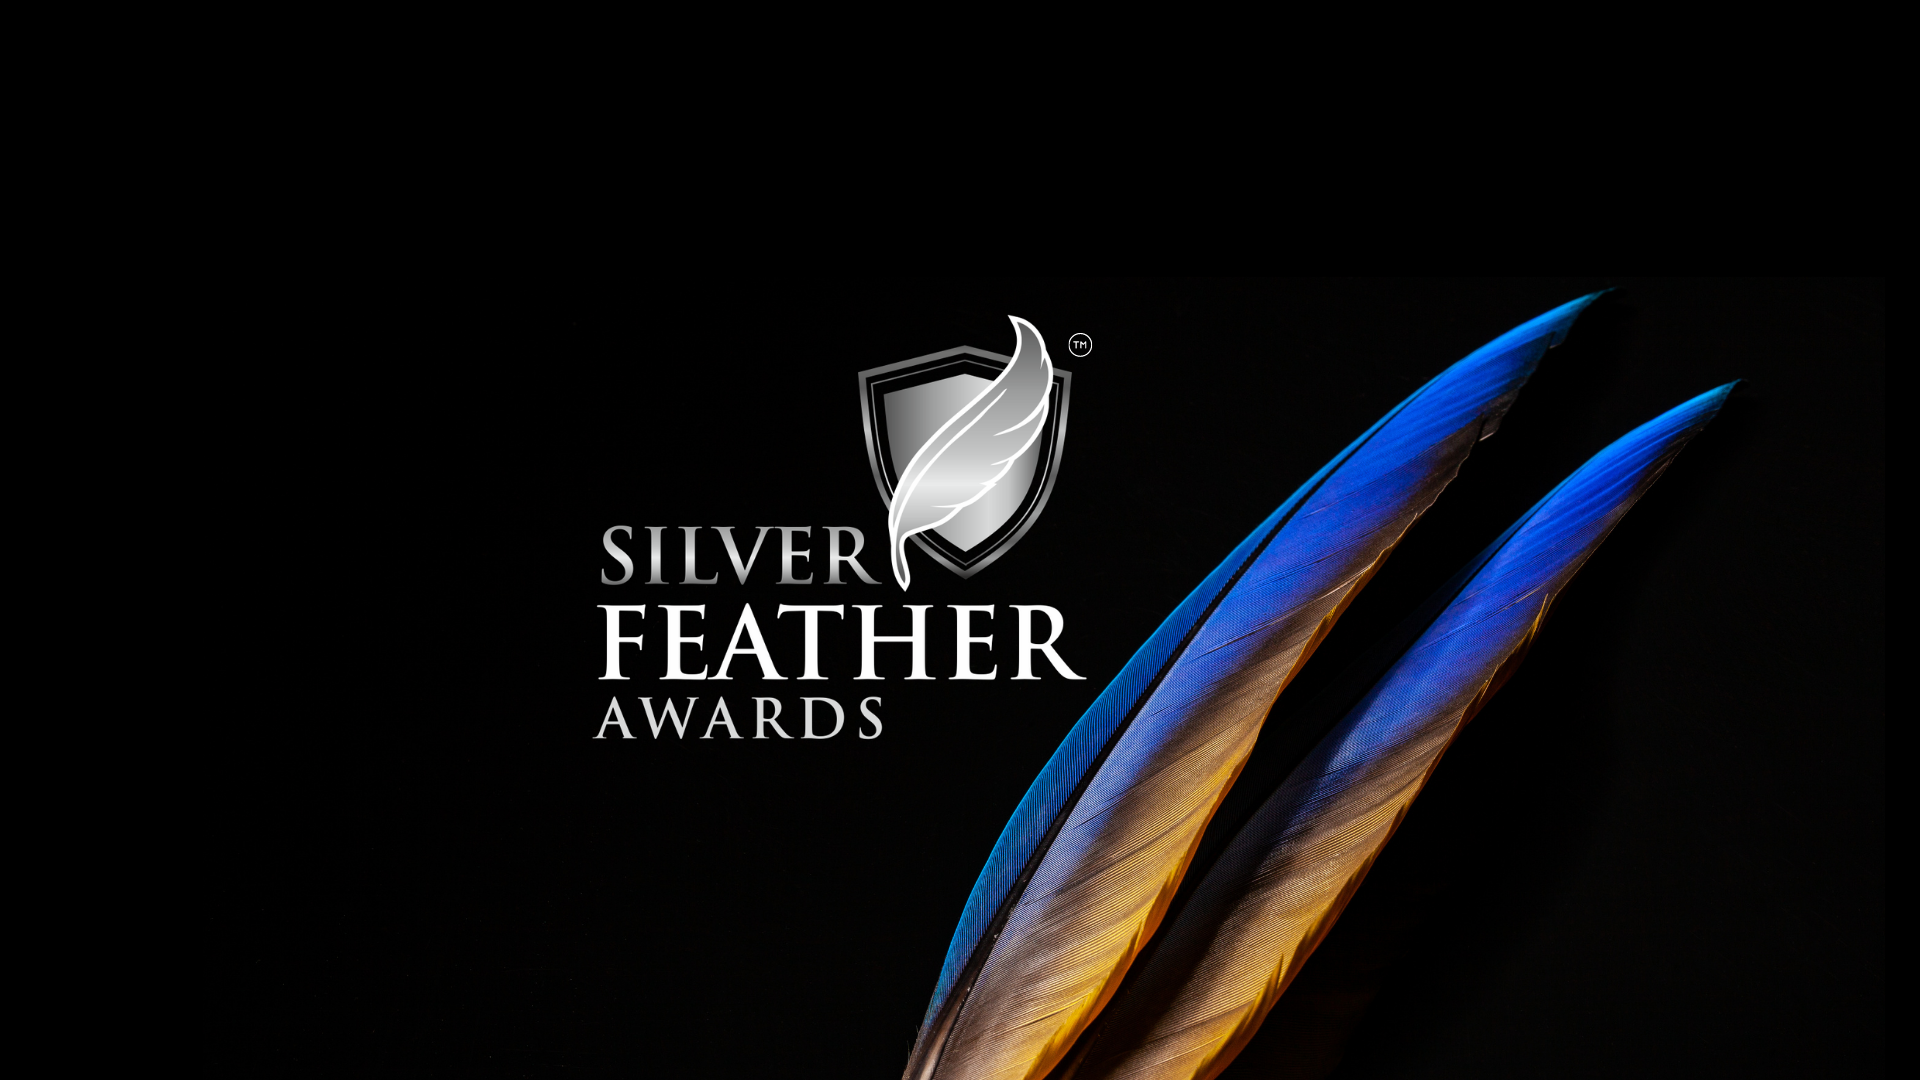 Silver Feather Awards - Feather Touch